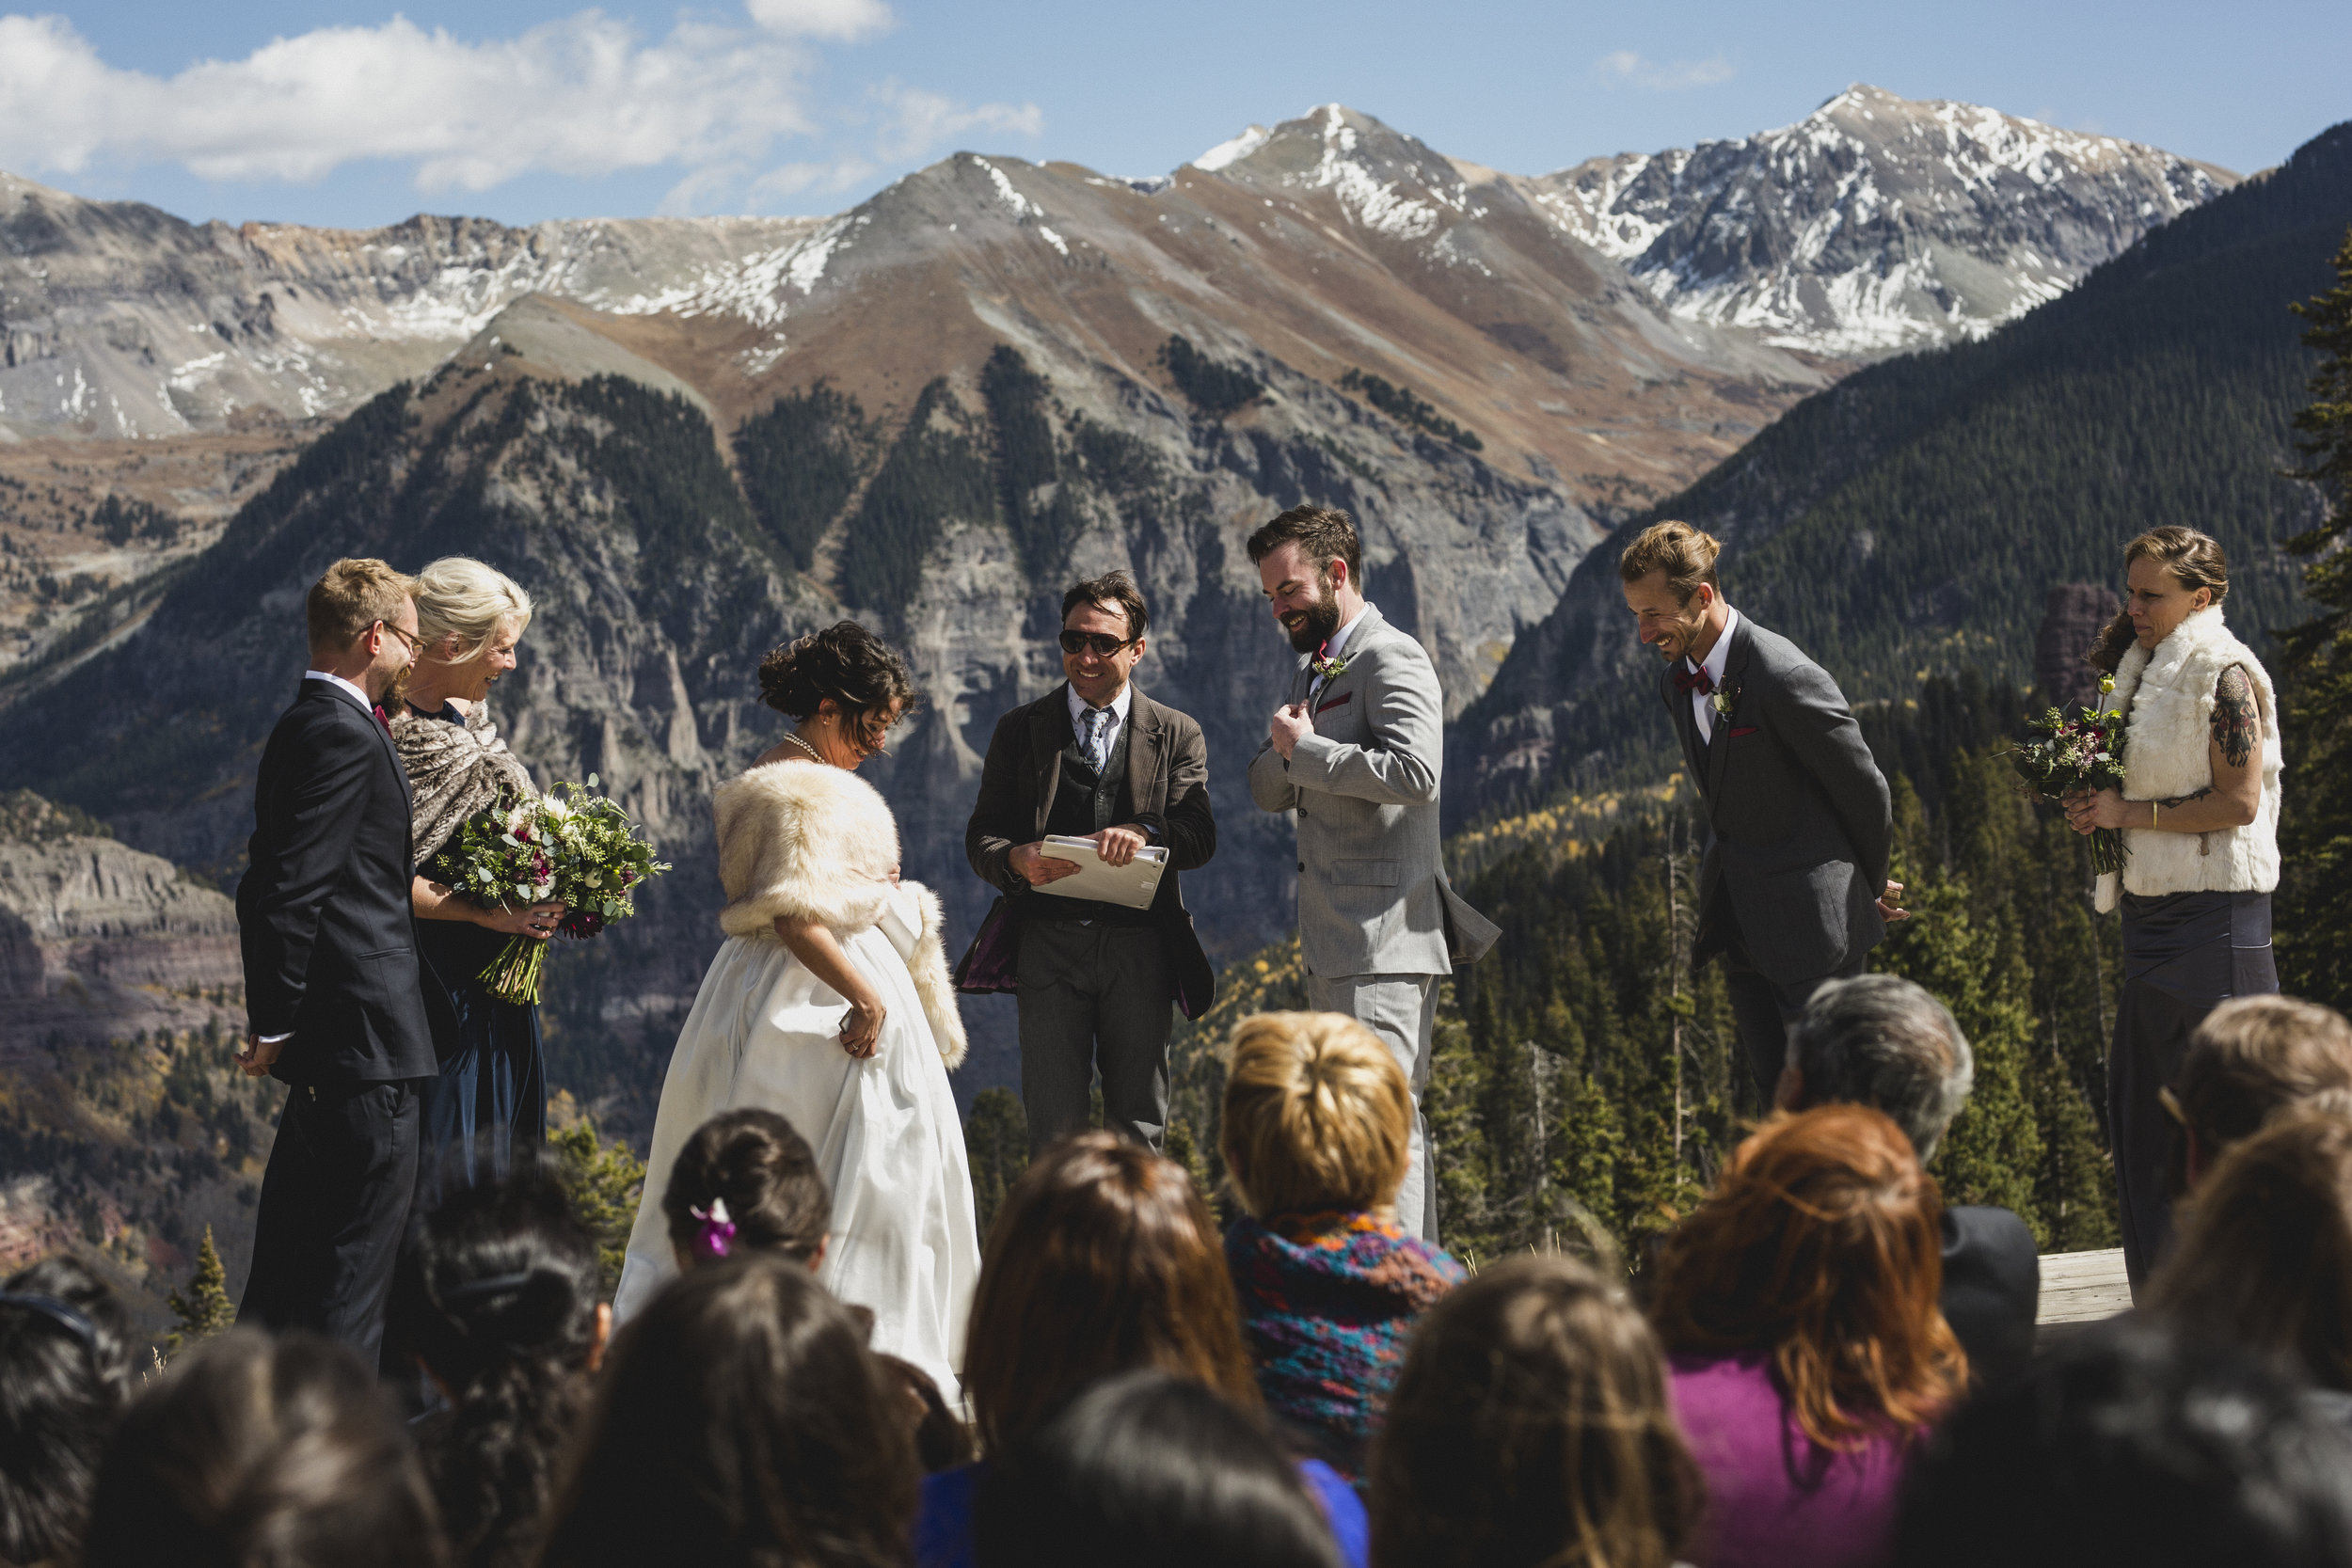 NE-LeahandAshtonphotography-Telluride-Wedding-Photography-9372.jpg